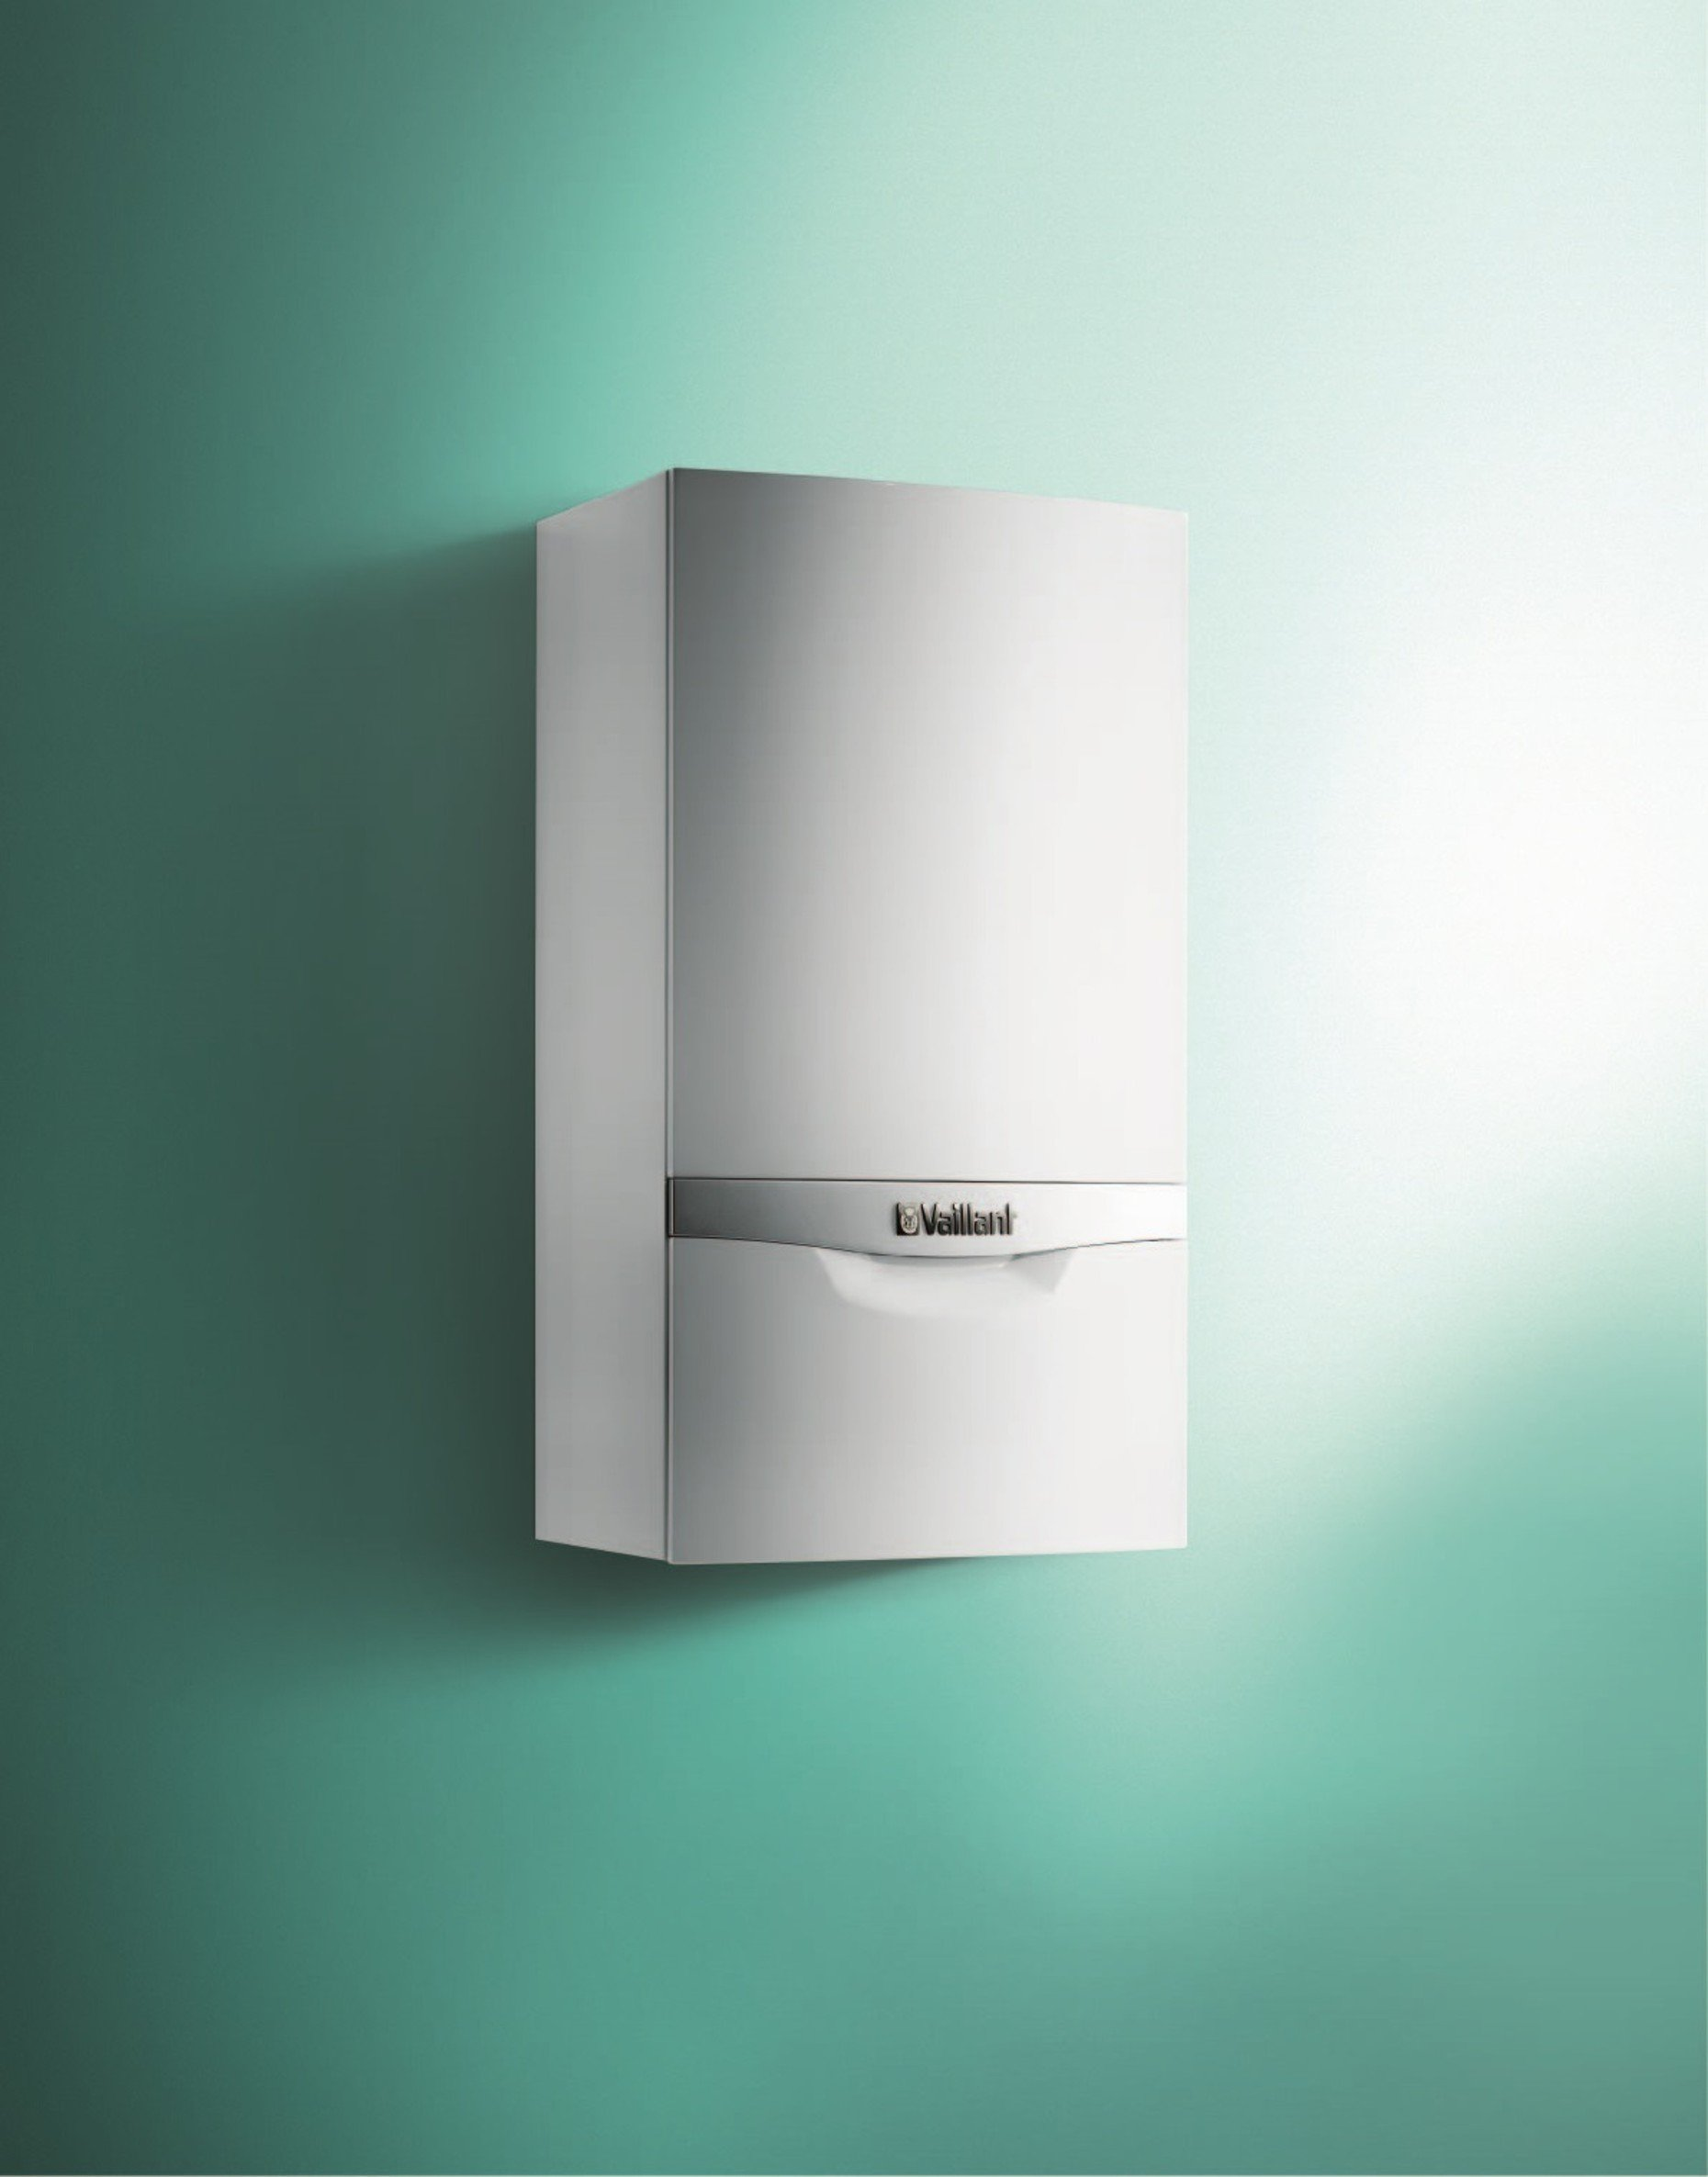 Котел газовый Vaillant TurboTec Plus VUW 242-5